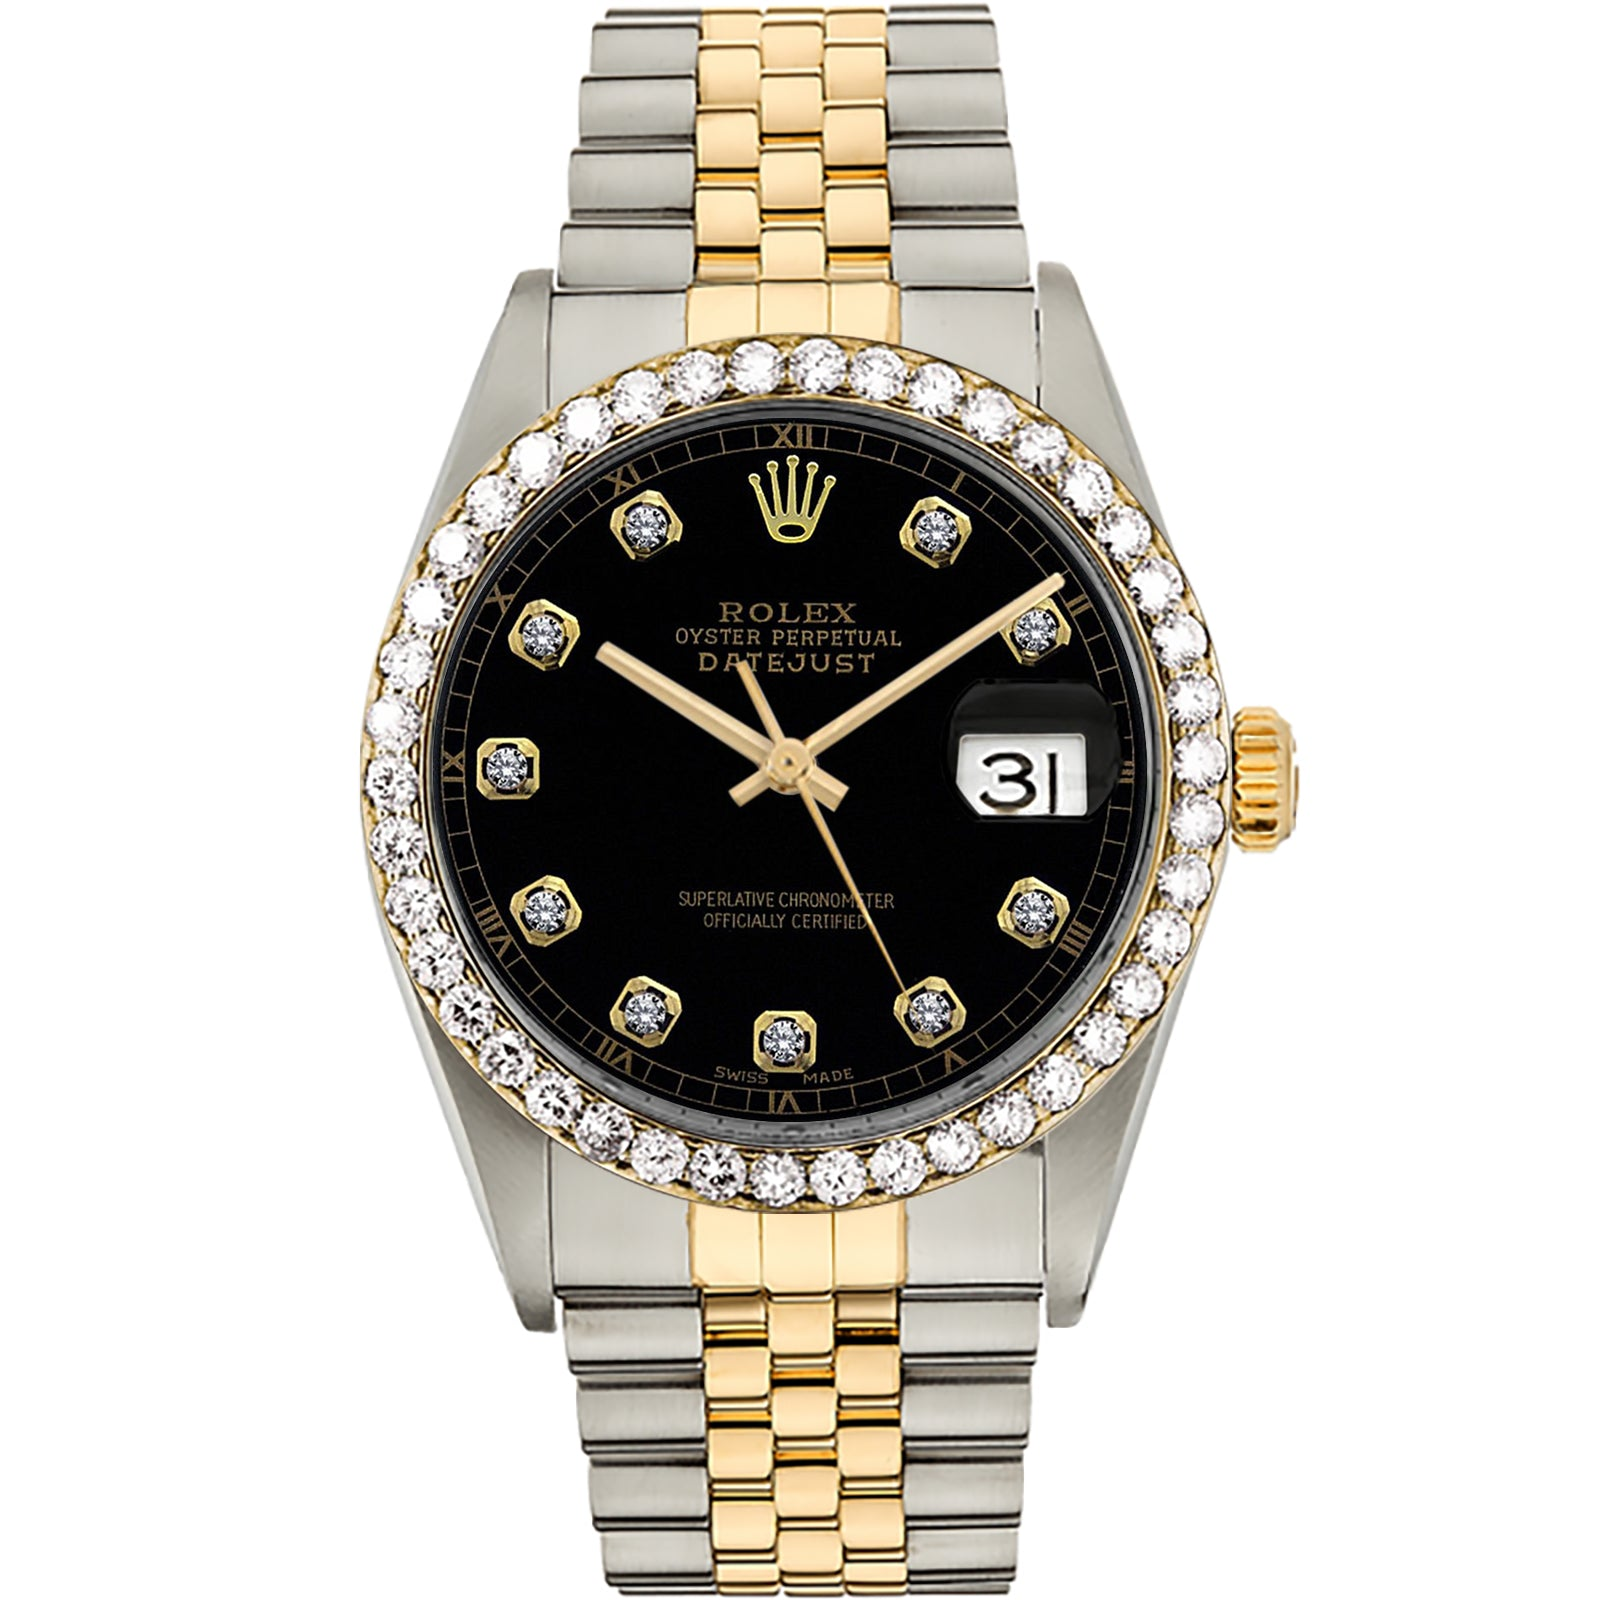 Diamond Rolex Two-Tone 18K Gold Datejust 36 Black Iced Watch